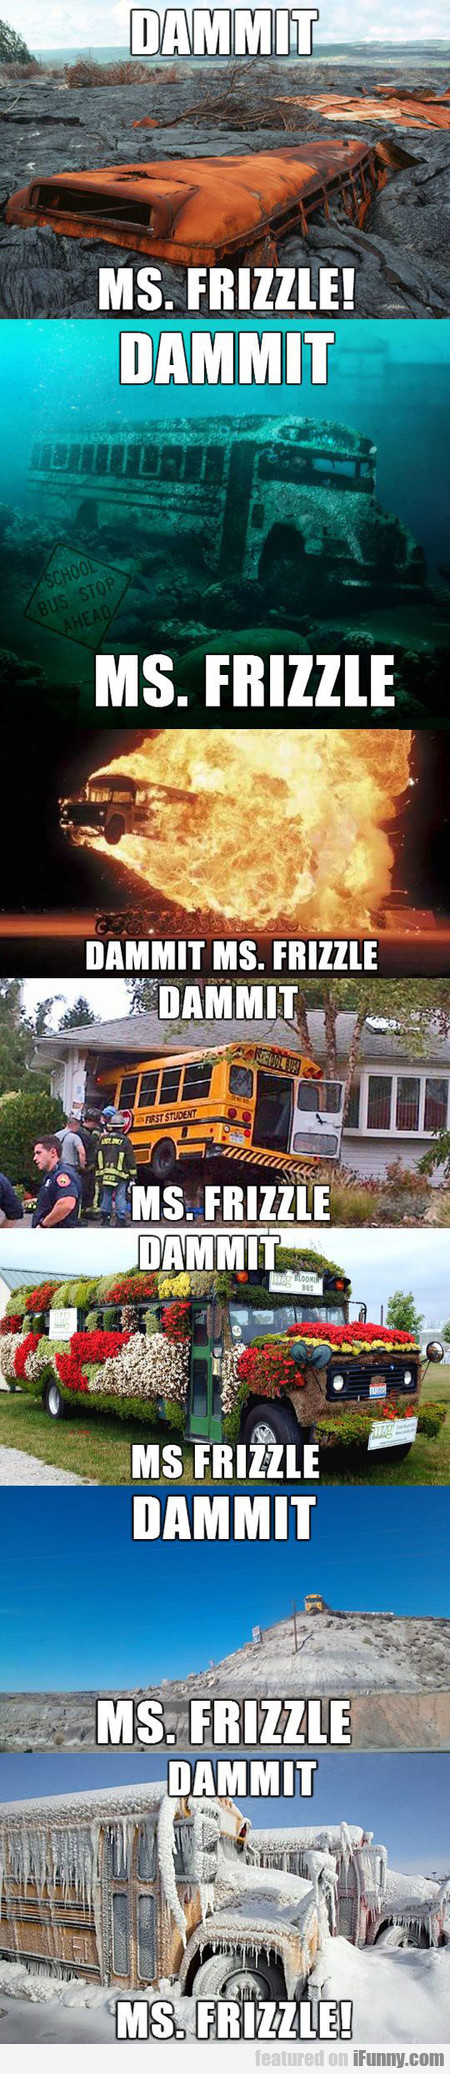 Ms. Frizzle Is At It Again